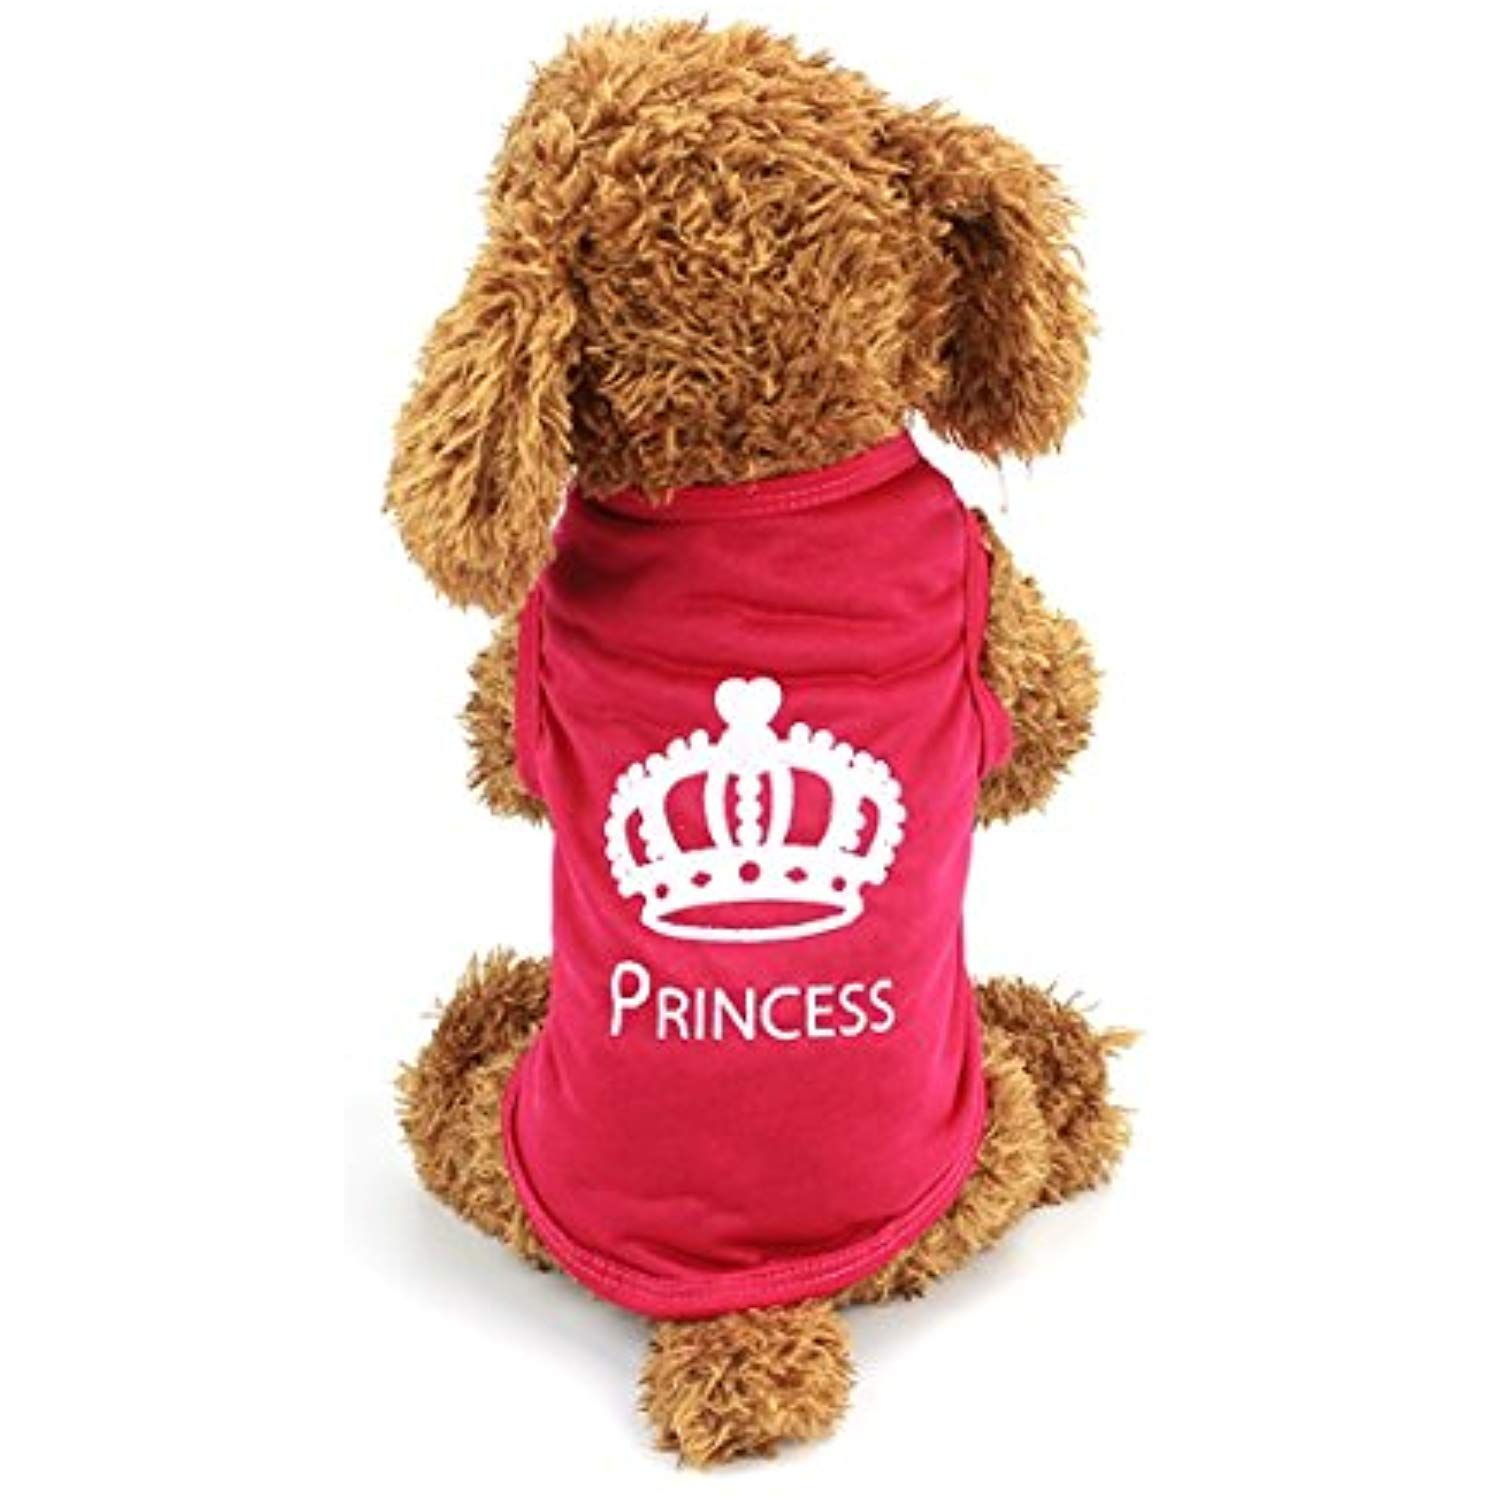 2cc4c61639dd Idepet TM Cute Pet Dog Cat Puppy T Shirts With Princess words for Yorkshire  Terrier pug Beagle Dog Vest Playsuit Clothes (L) >>> Be sure to check out  this ...